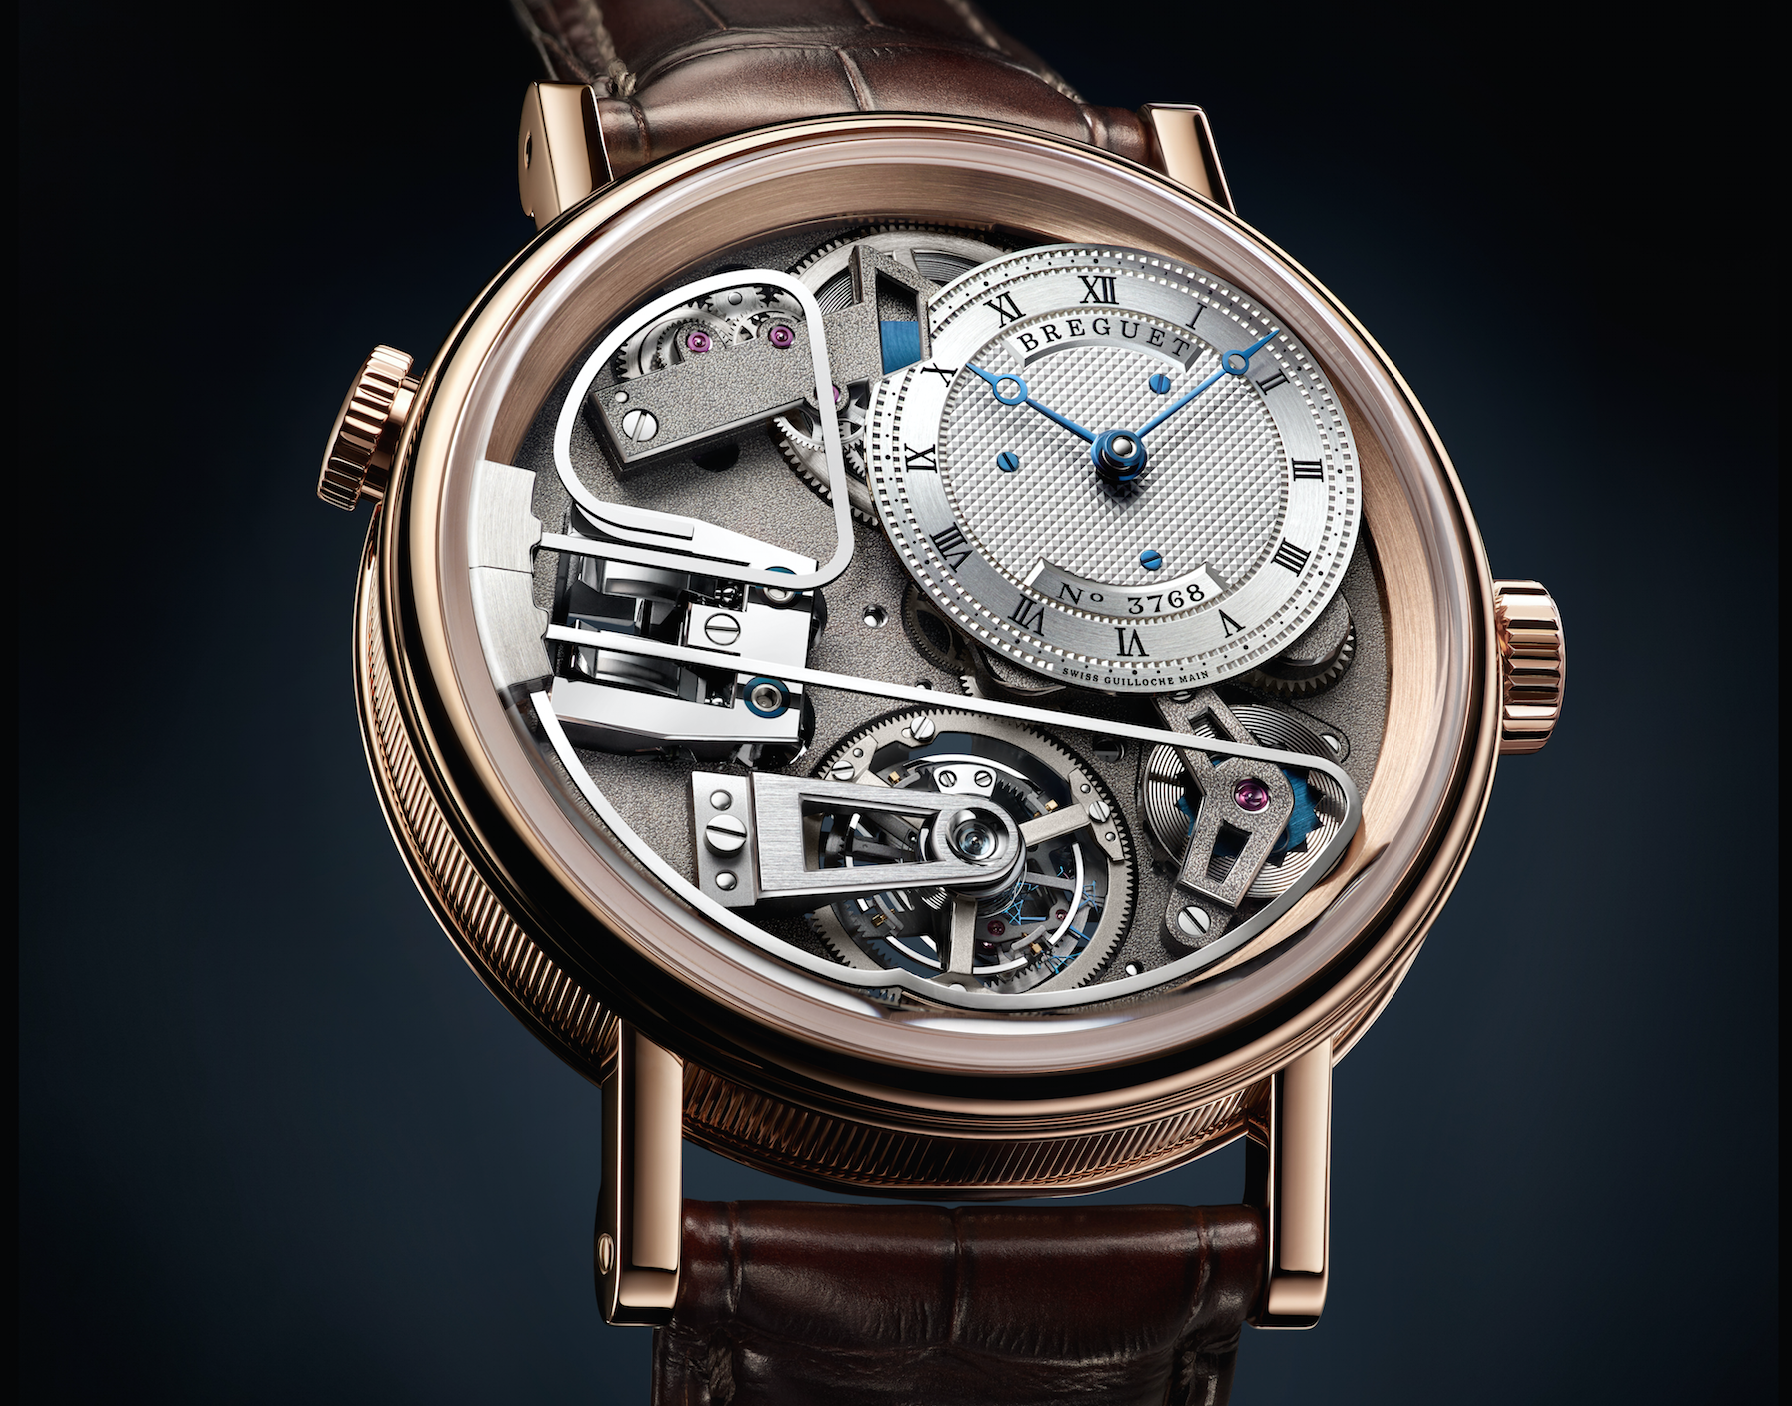 Breguet Tradition Repetition Minutes